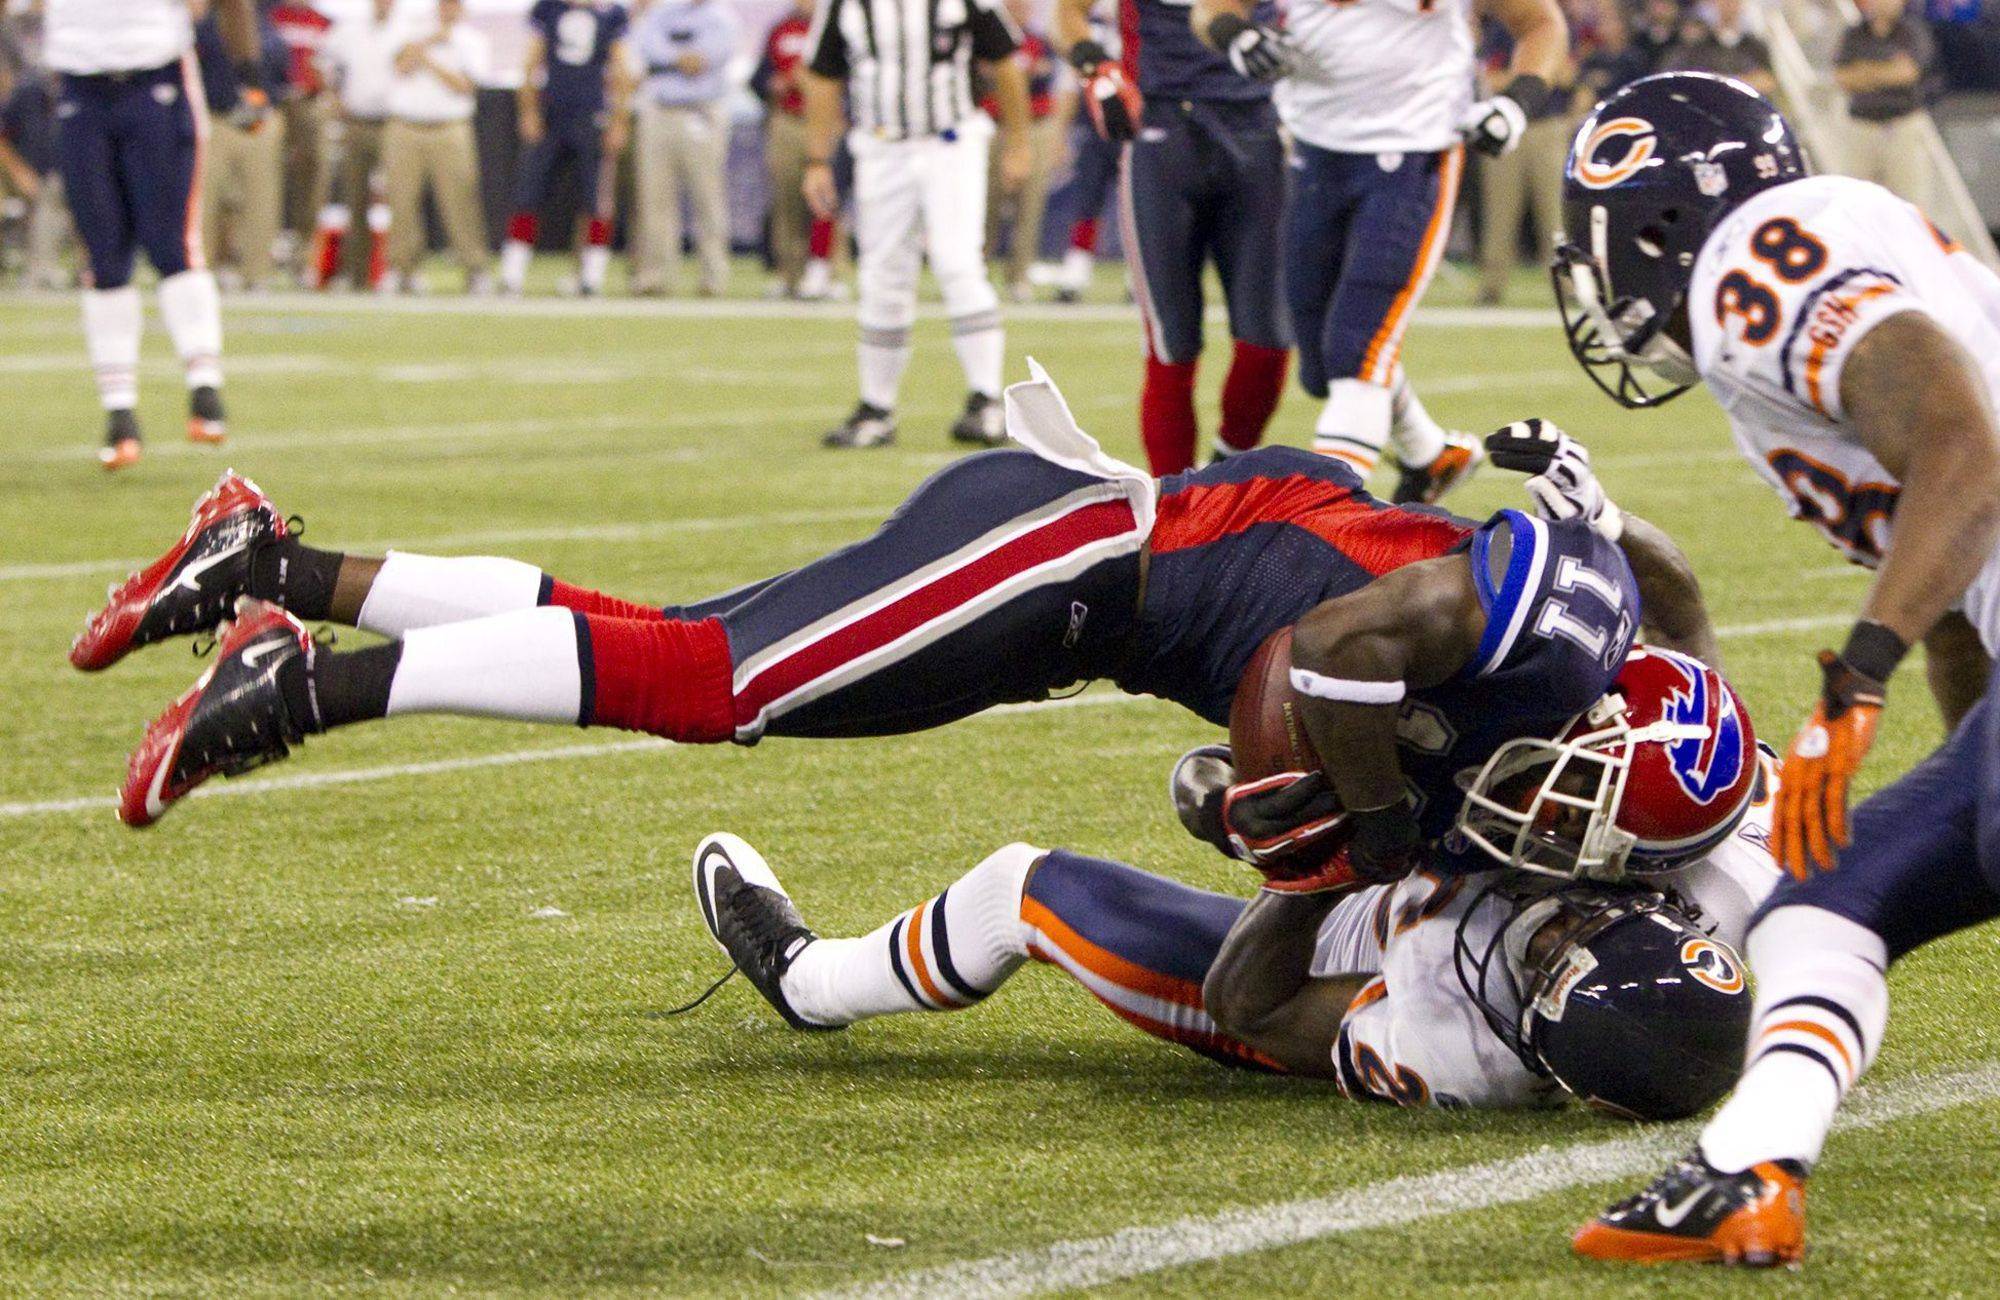 Buffalo Bills' Roscoe Parrish dives into the end zone for a touchdown as Chicago Bears' Tim Jennings attempts to make the tackle during first-half.